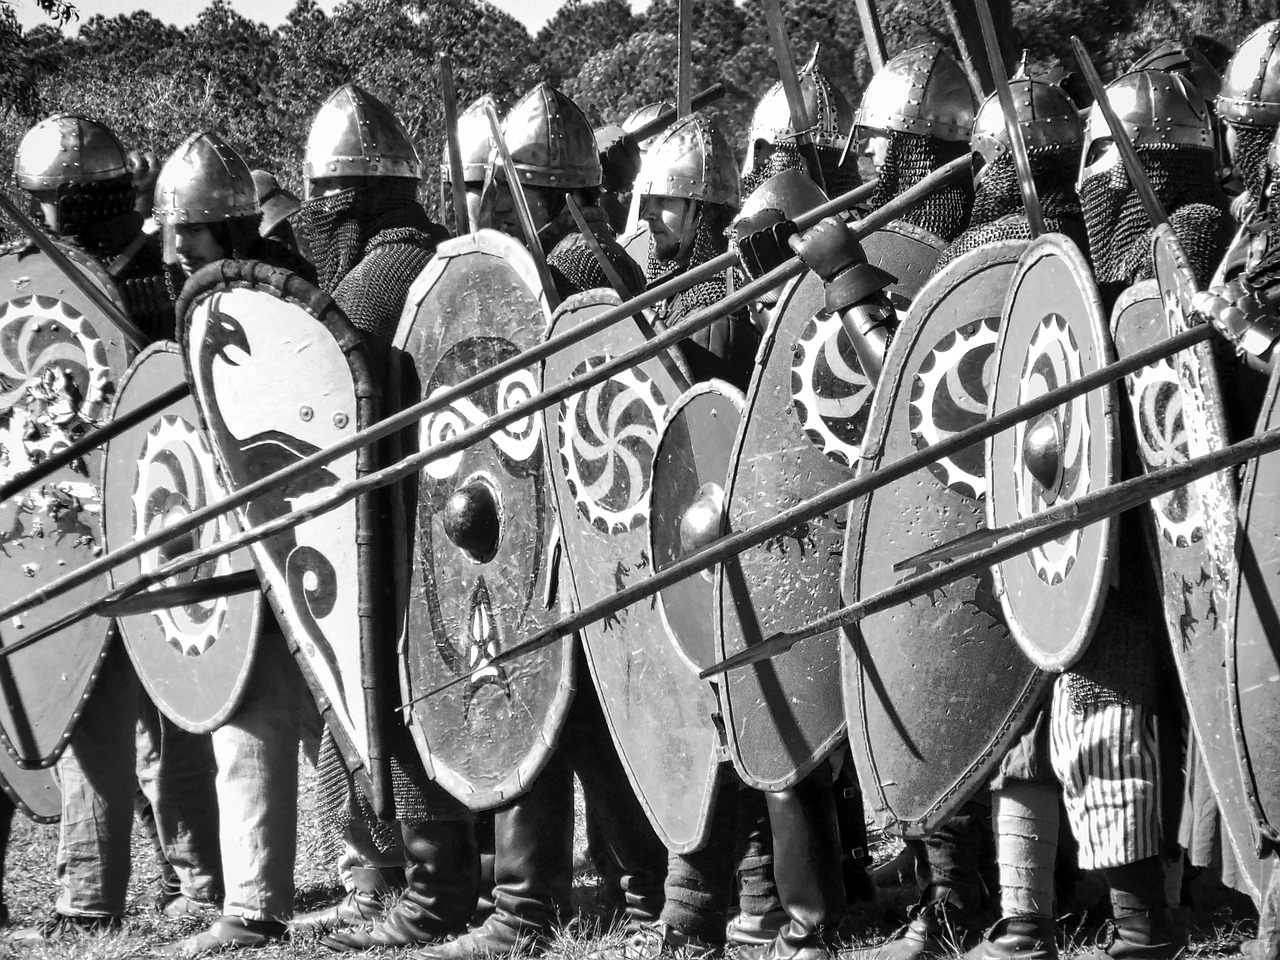 Shields up! The enemy is approaching.